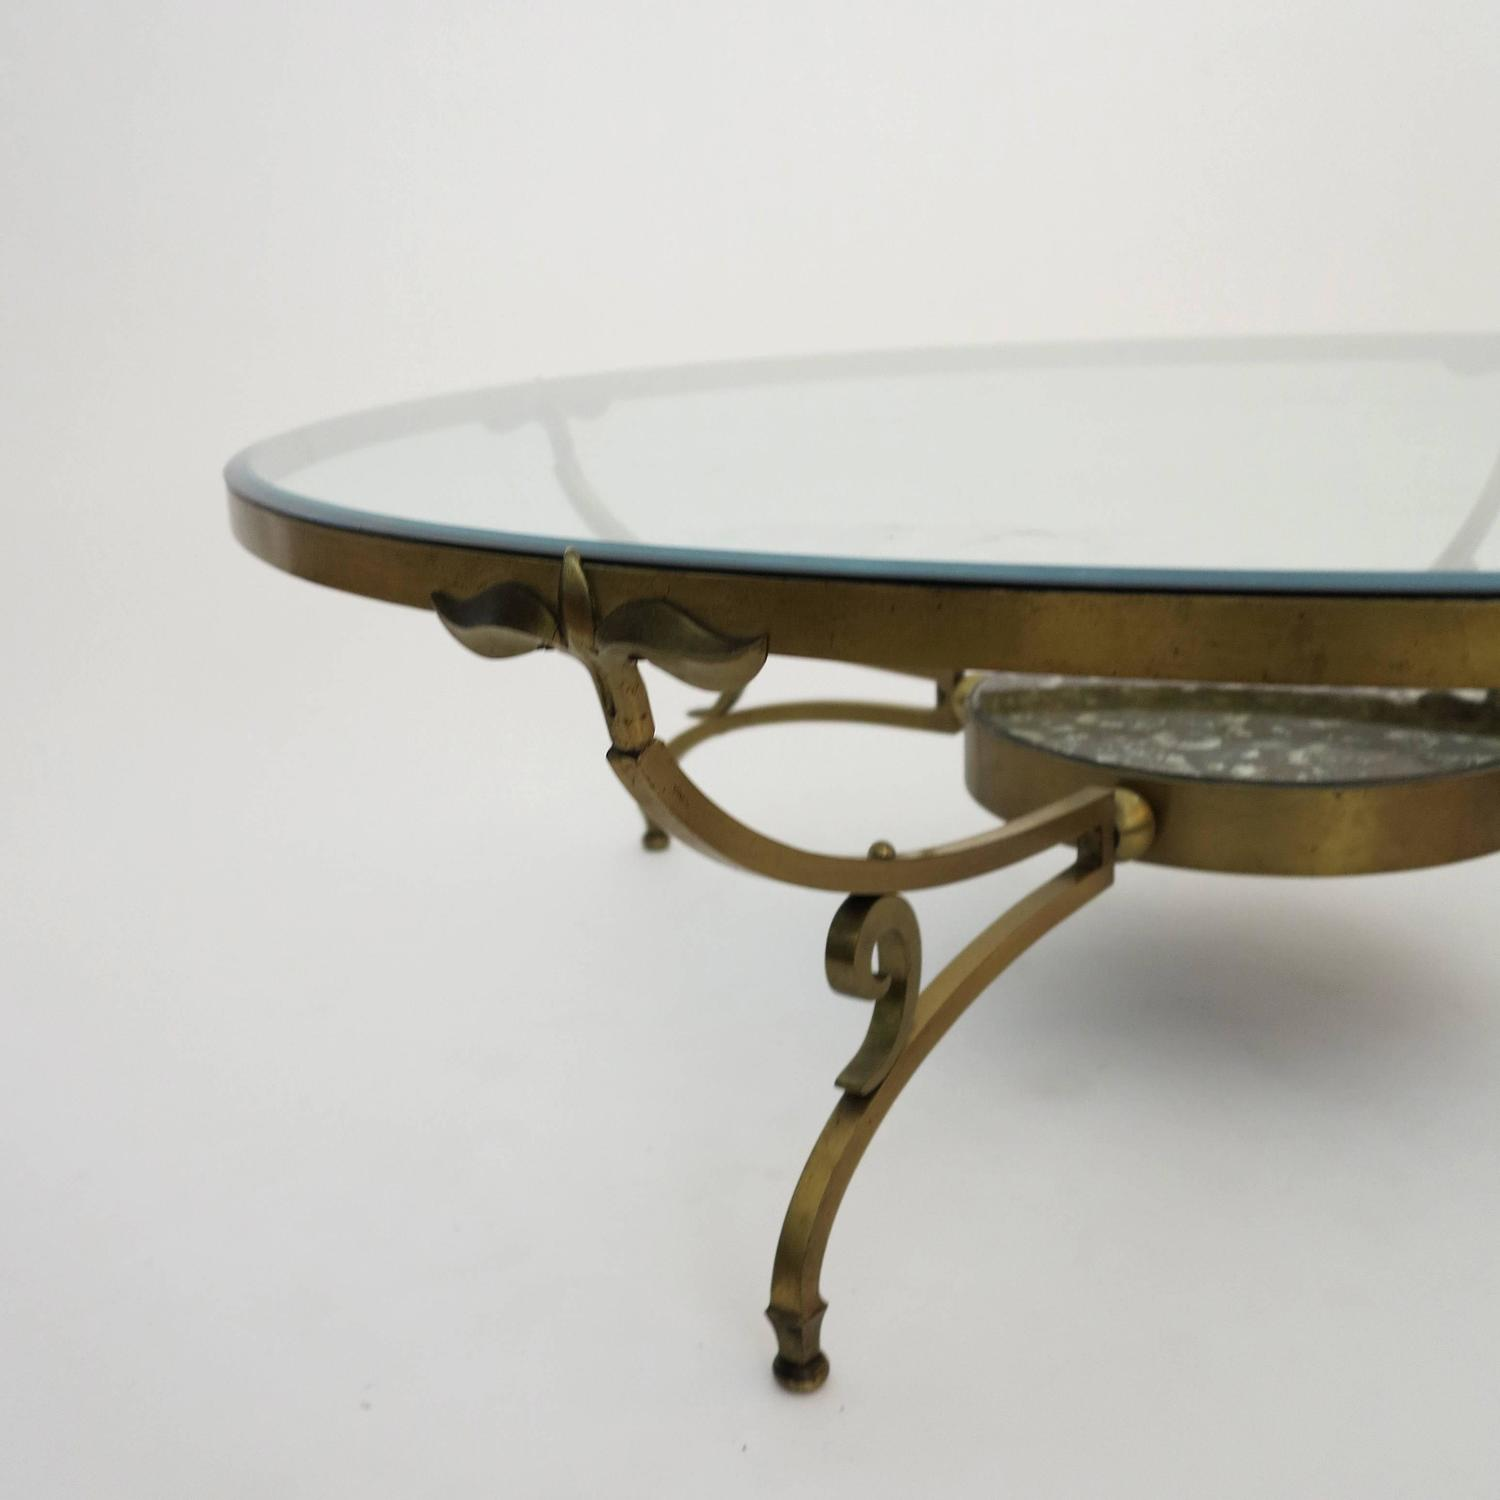 Bronze Coffee Table Nz: Round Bronze And Glass Coffee Table By Arturo Pani For